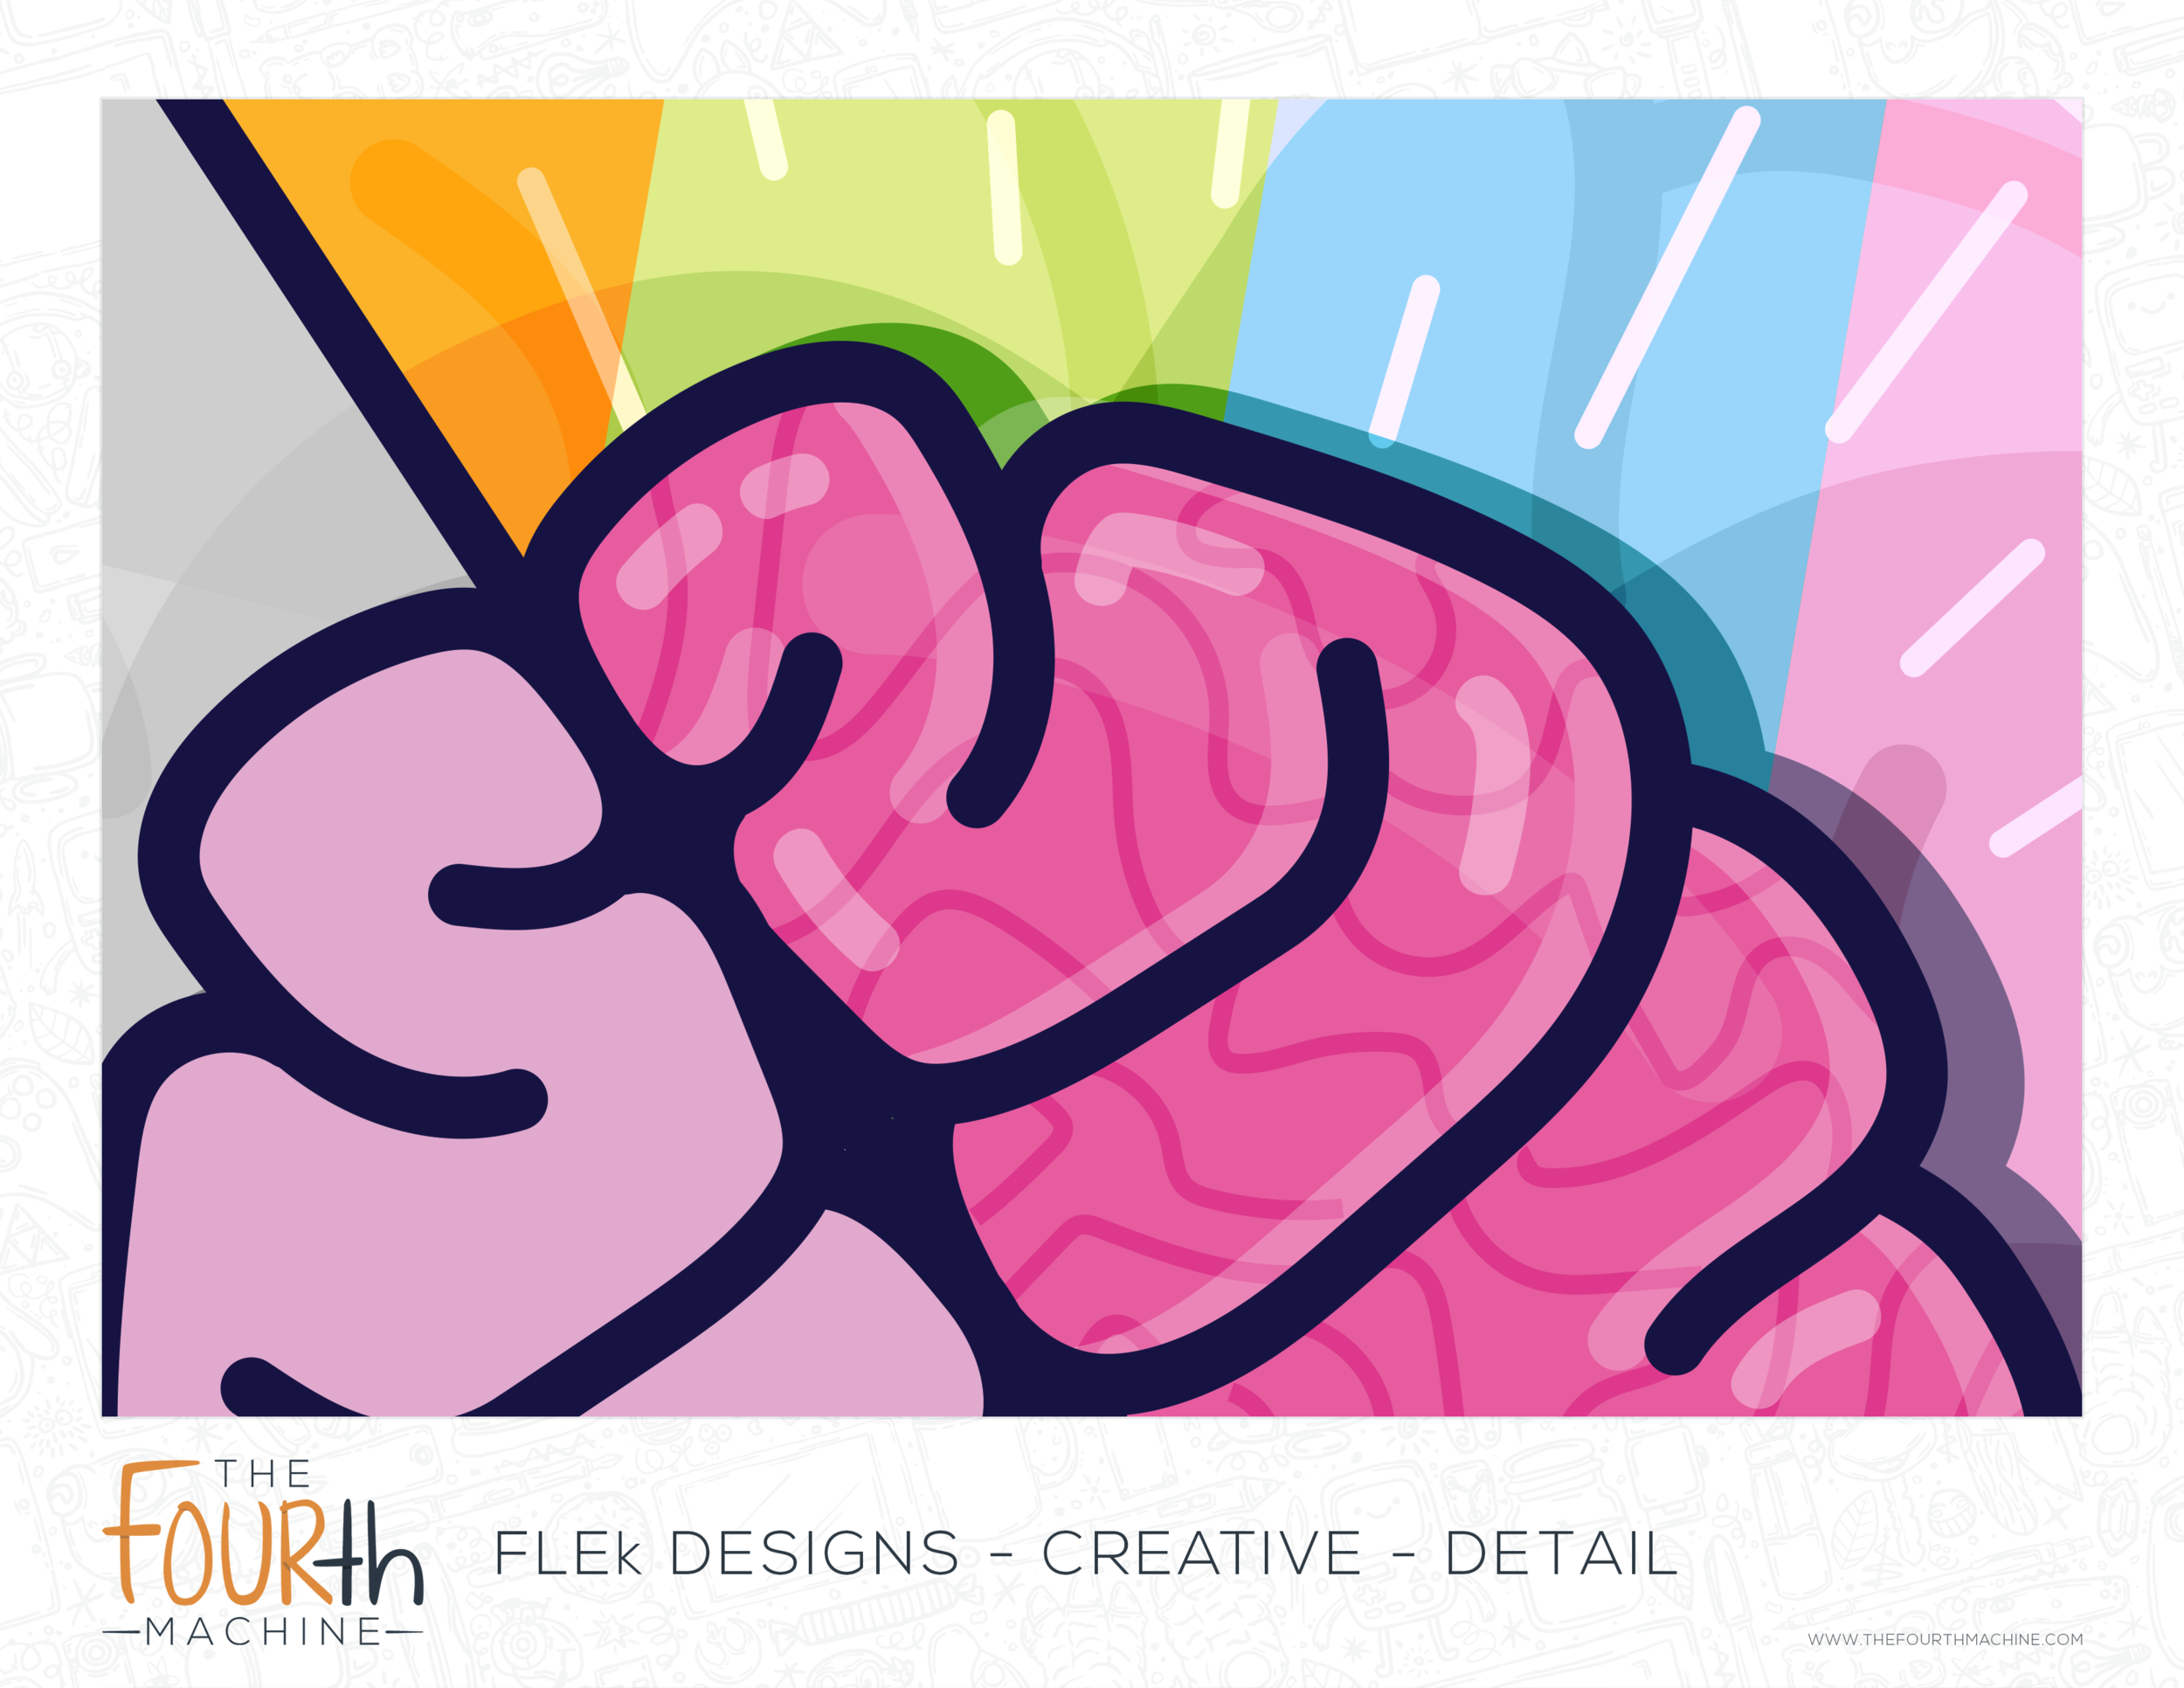 FLEk_Designs_Creative.png